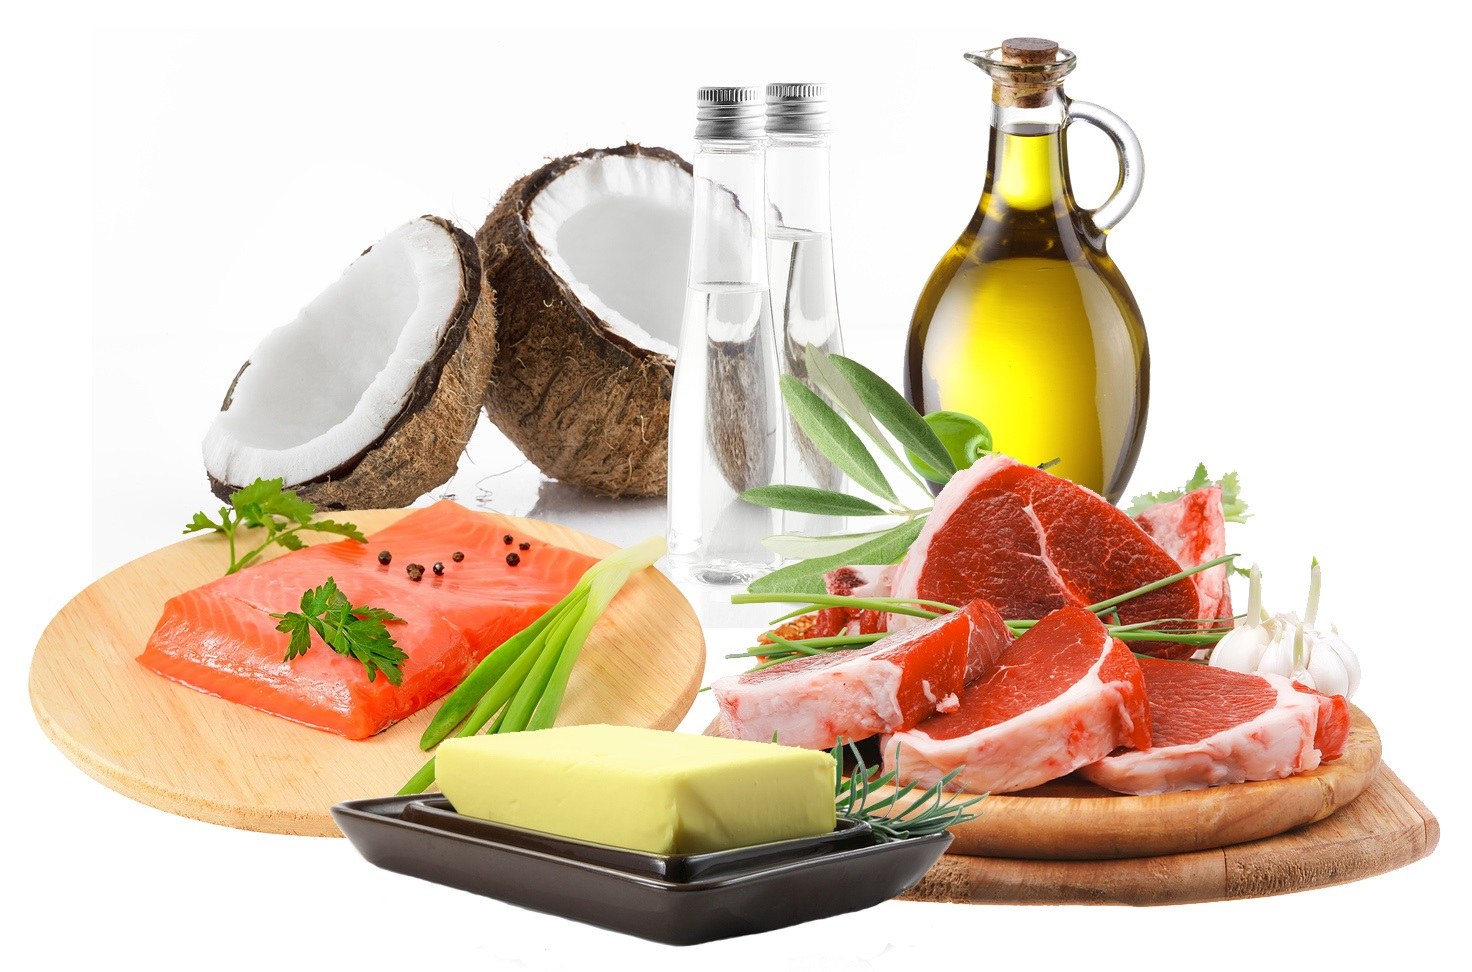 Picture of foods commonly part of a ketogenic diet, including salmon, red meat, coconut oil, olive oil and butter. A ketogenic diet and ketones have been shown to increase BDNF levels.